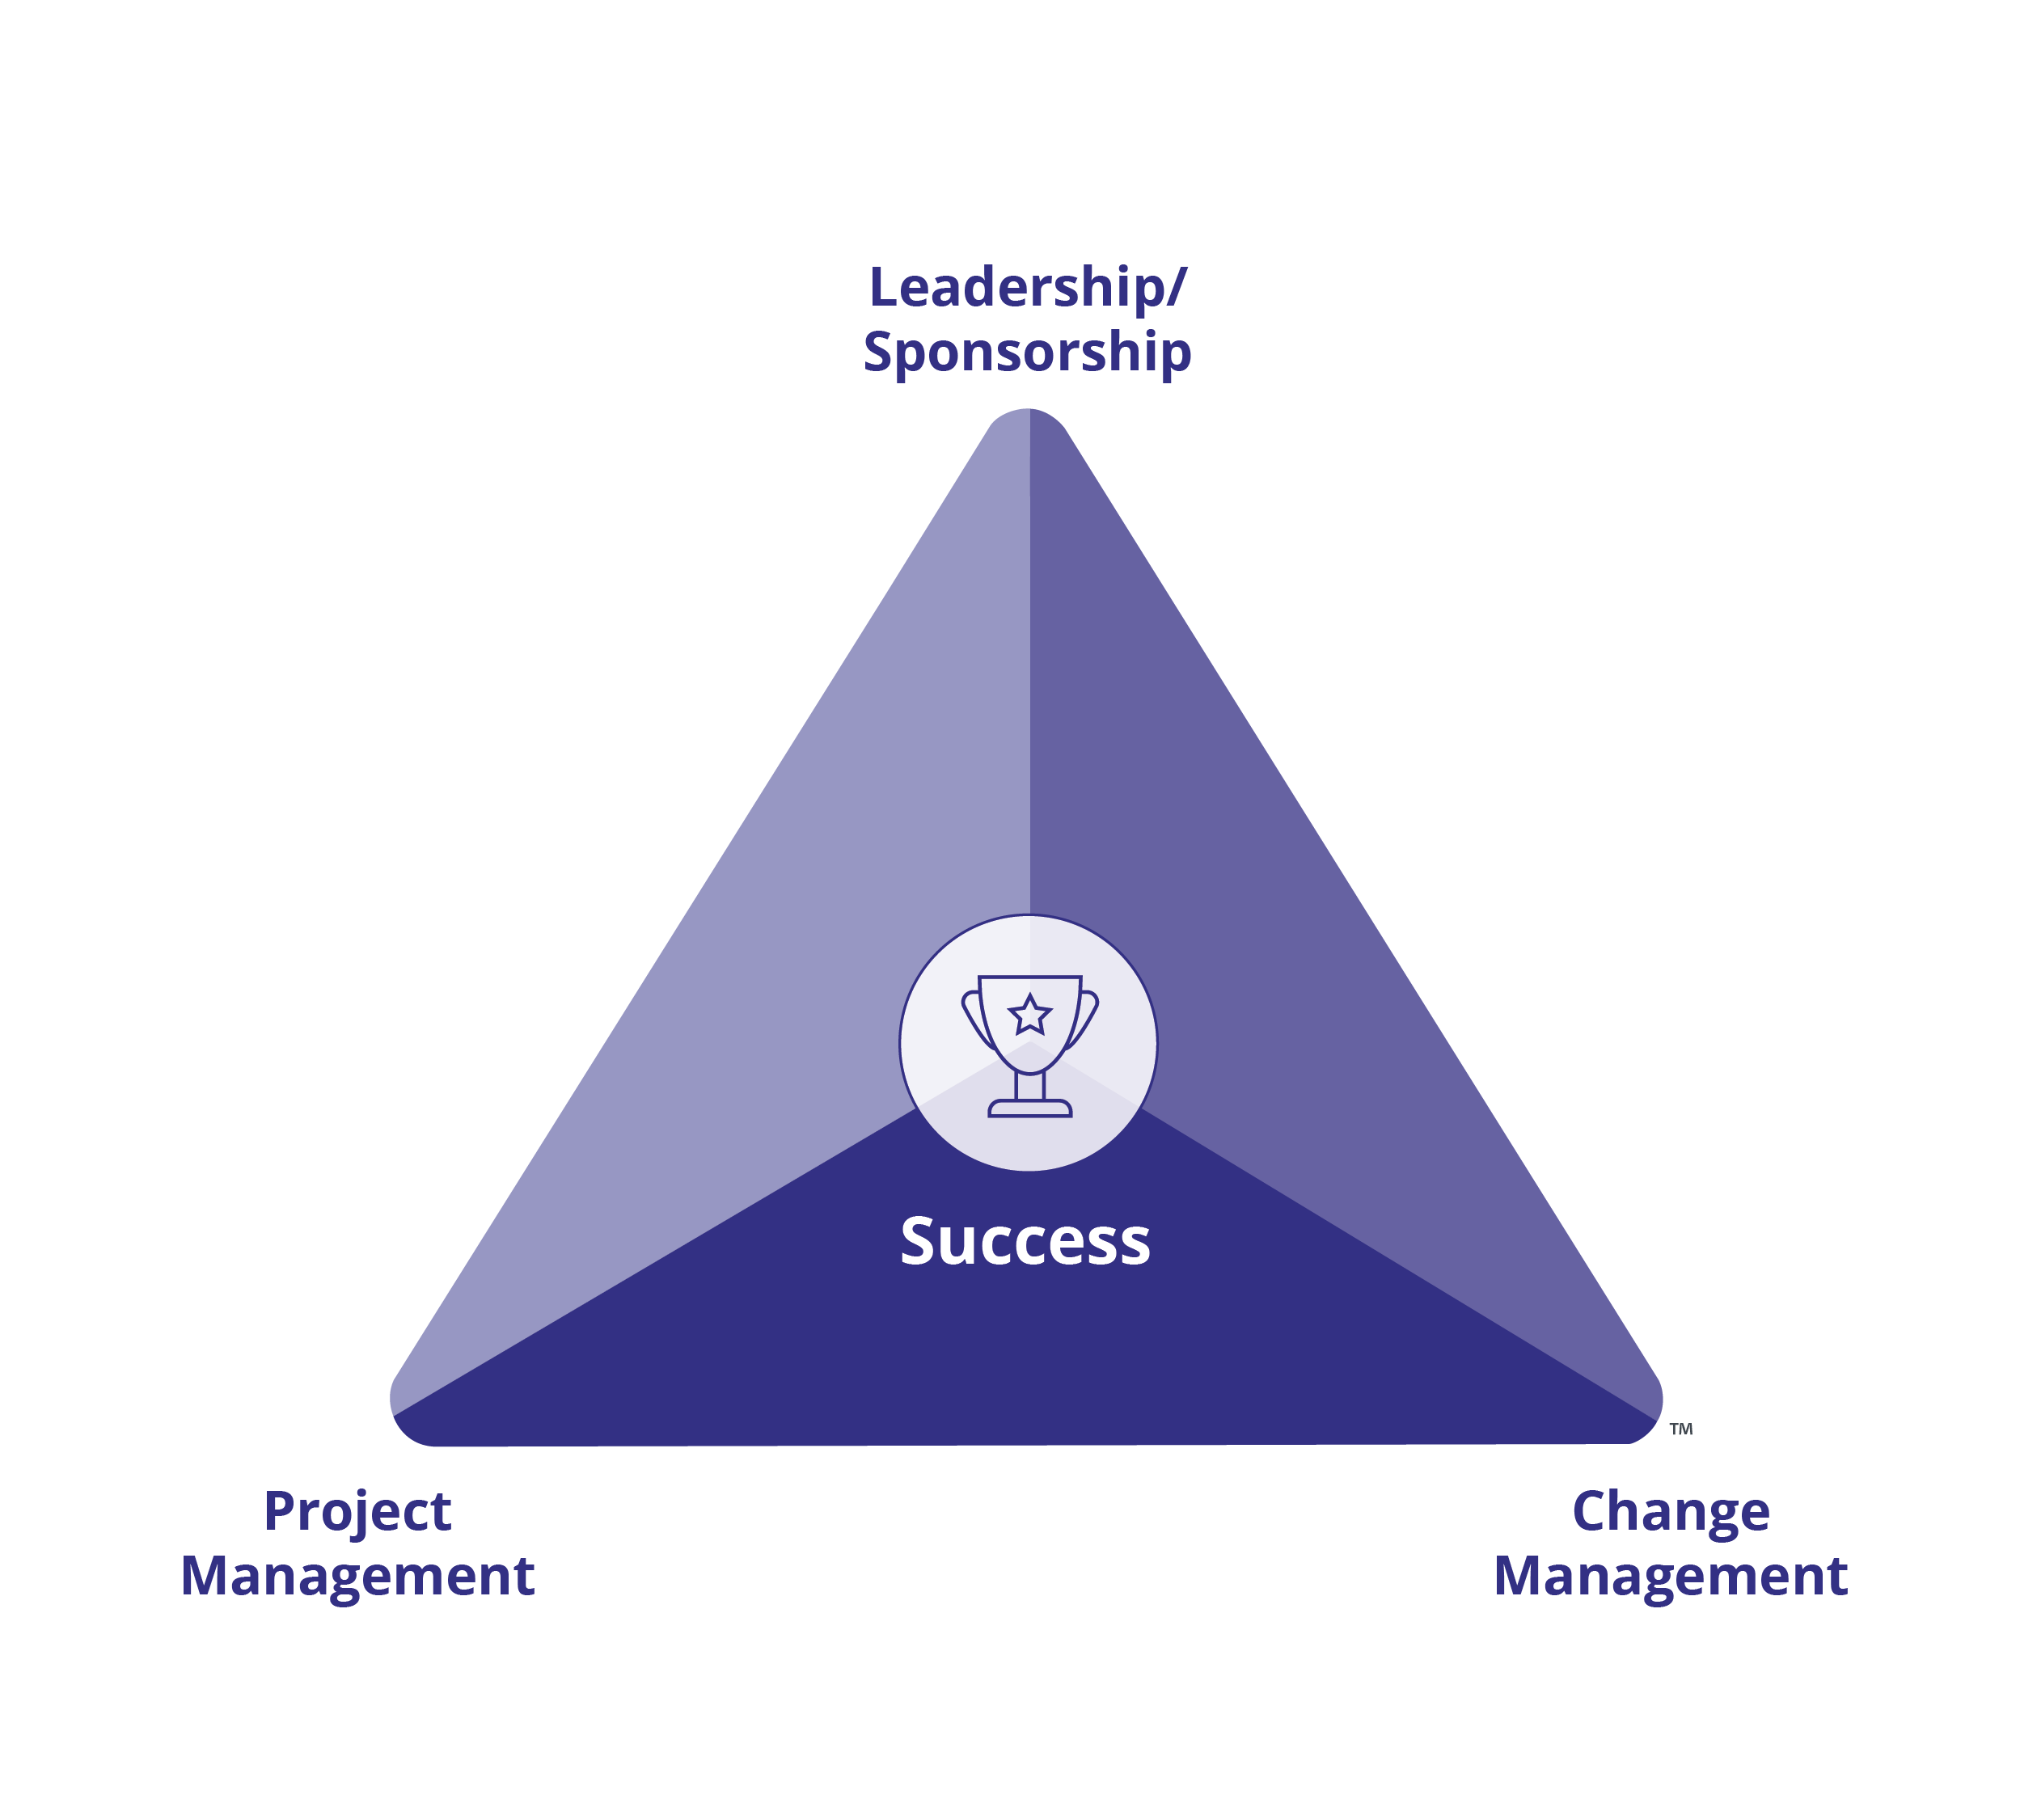 Begin with Project Health: Introducing the Prosci Change Triangle